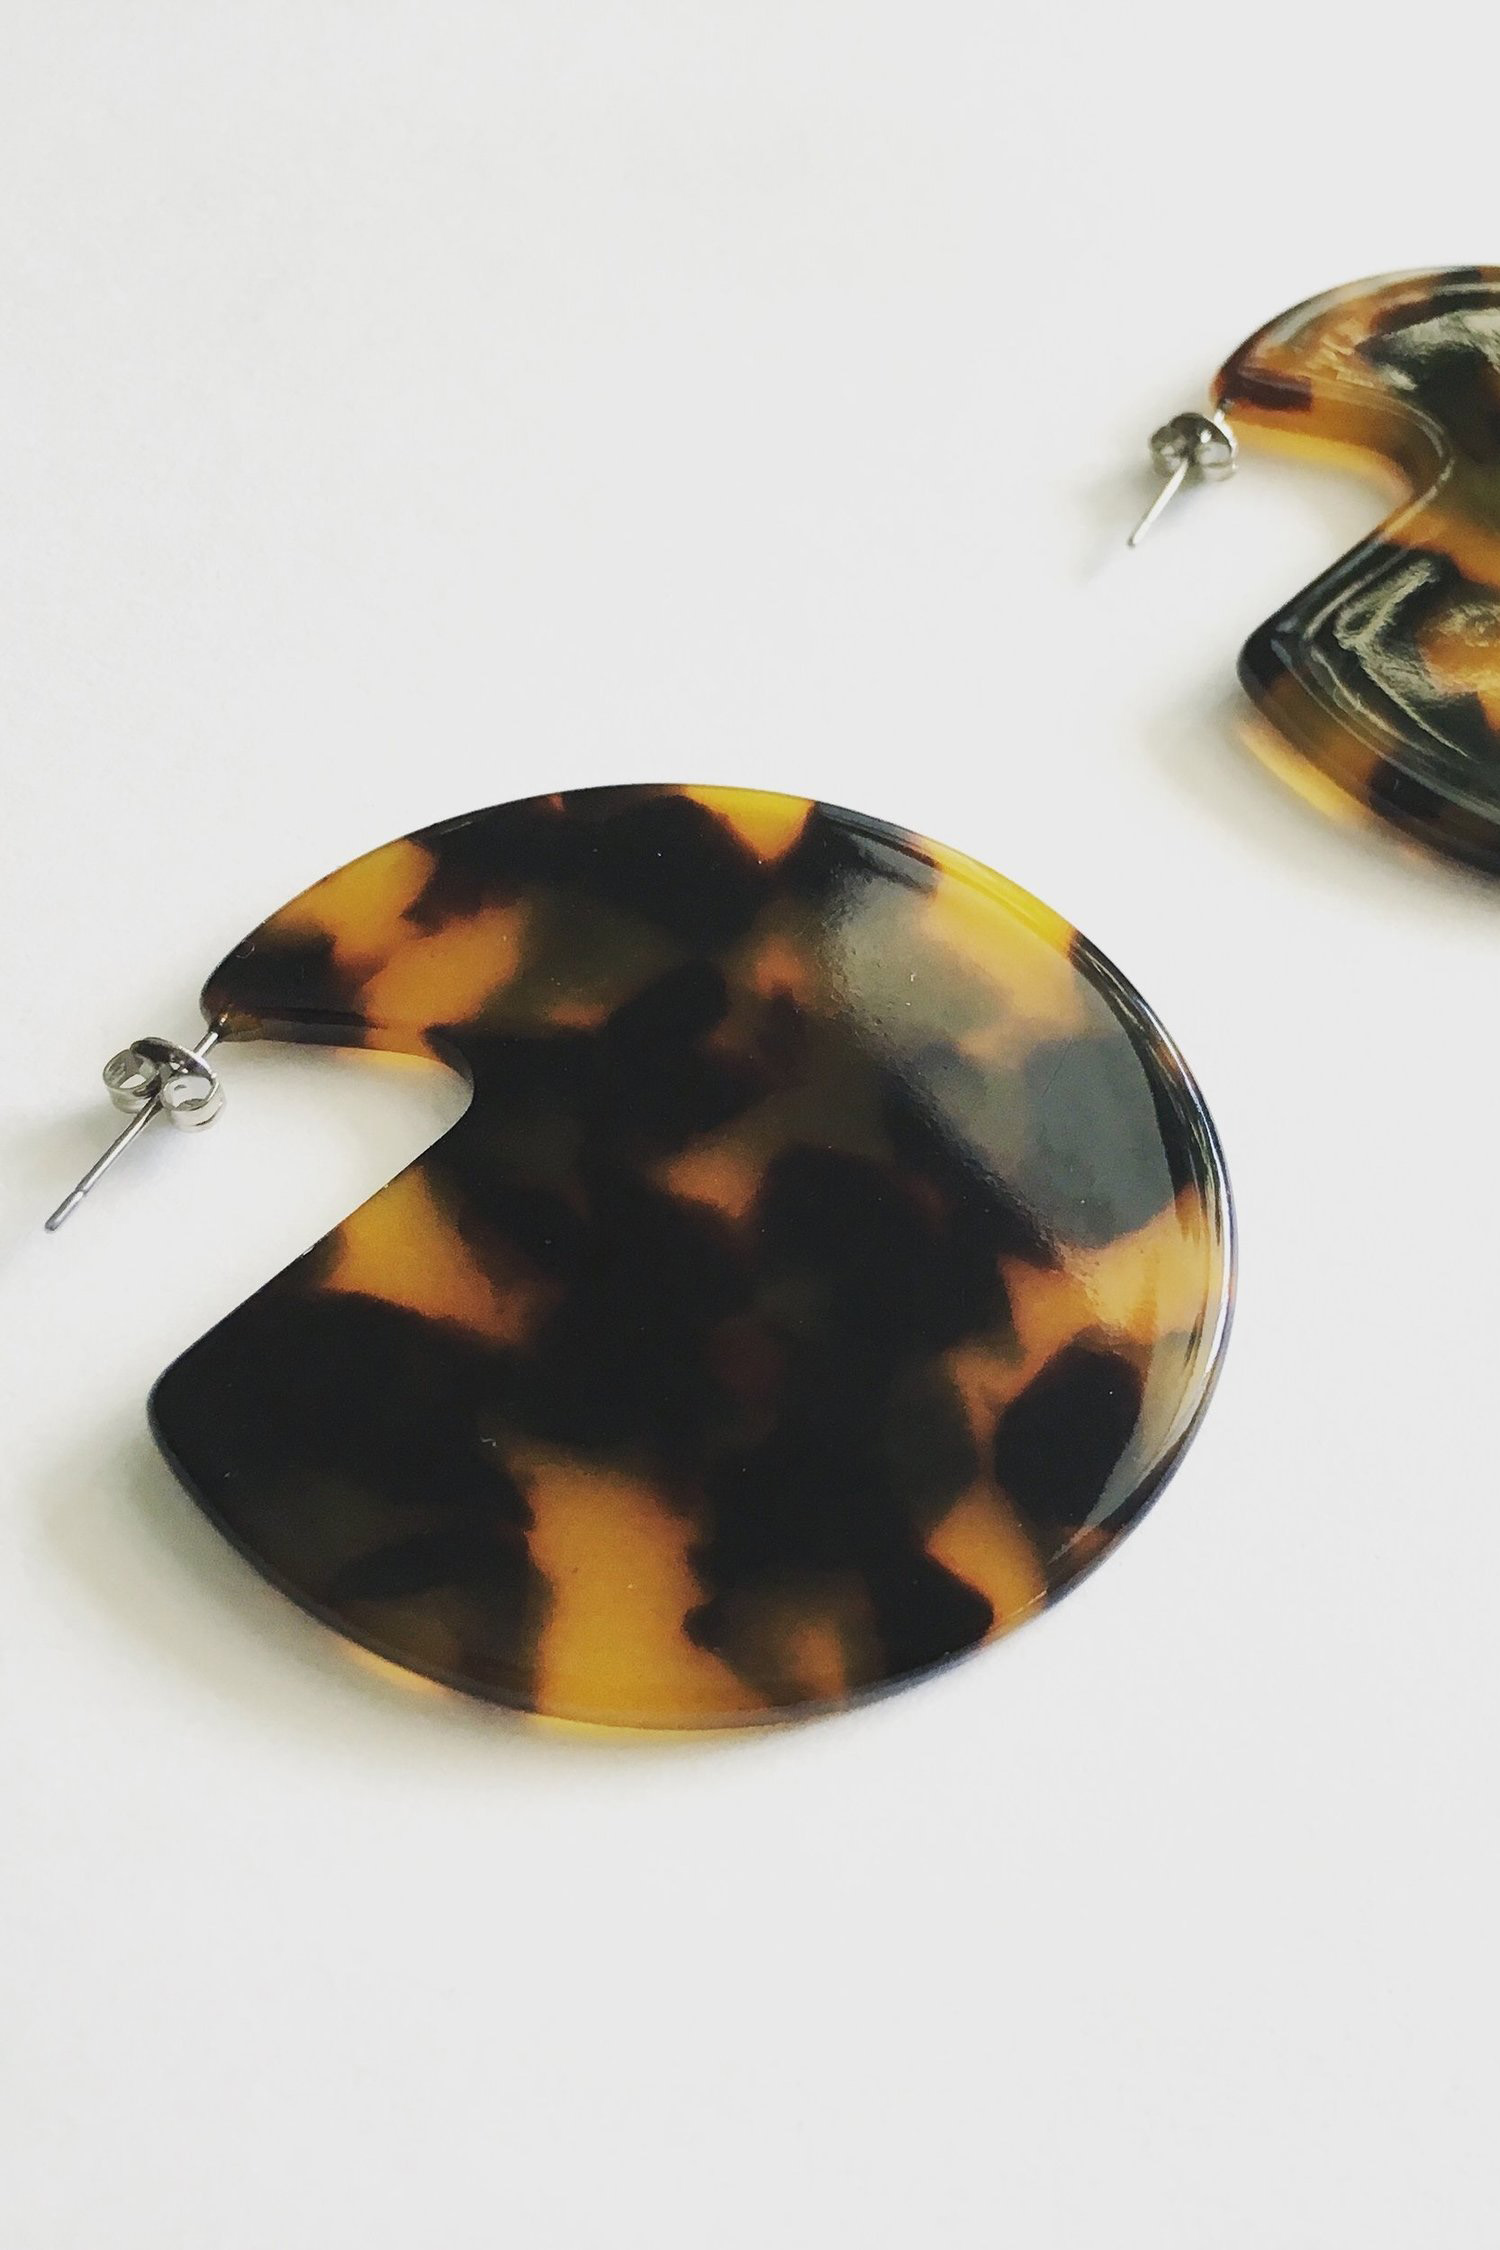 Clare Earrings in Classic Tortoise: $80 NZD from Mooma